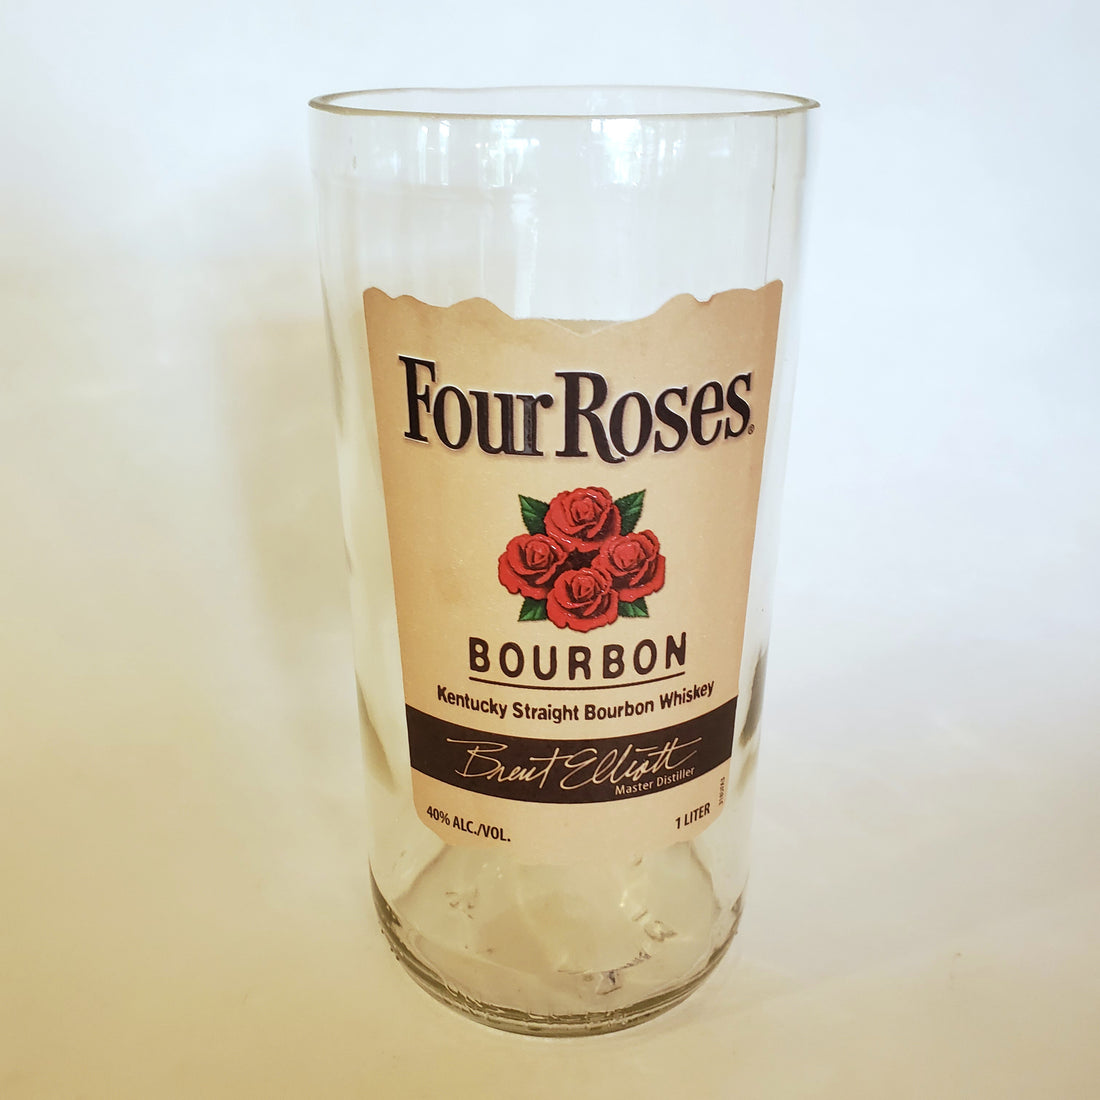 Four Roses Bourbon 1L Hand Cut Upcycled Liquor Bottle Candle - Choose Your Scent